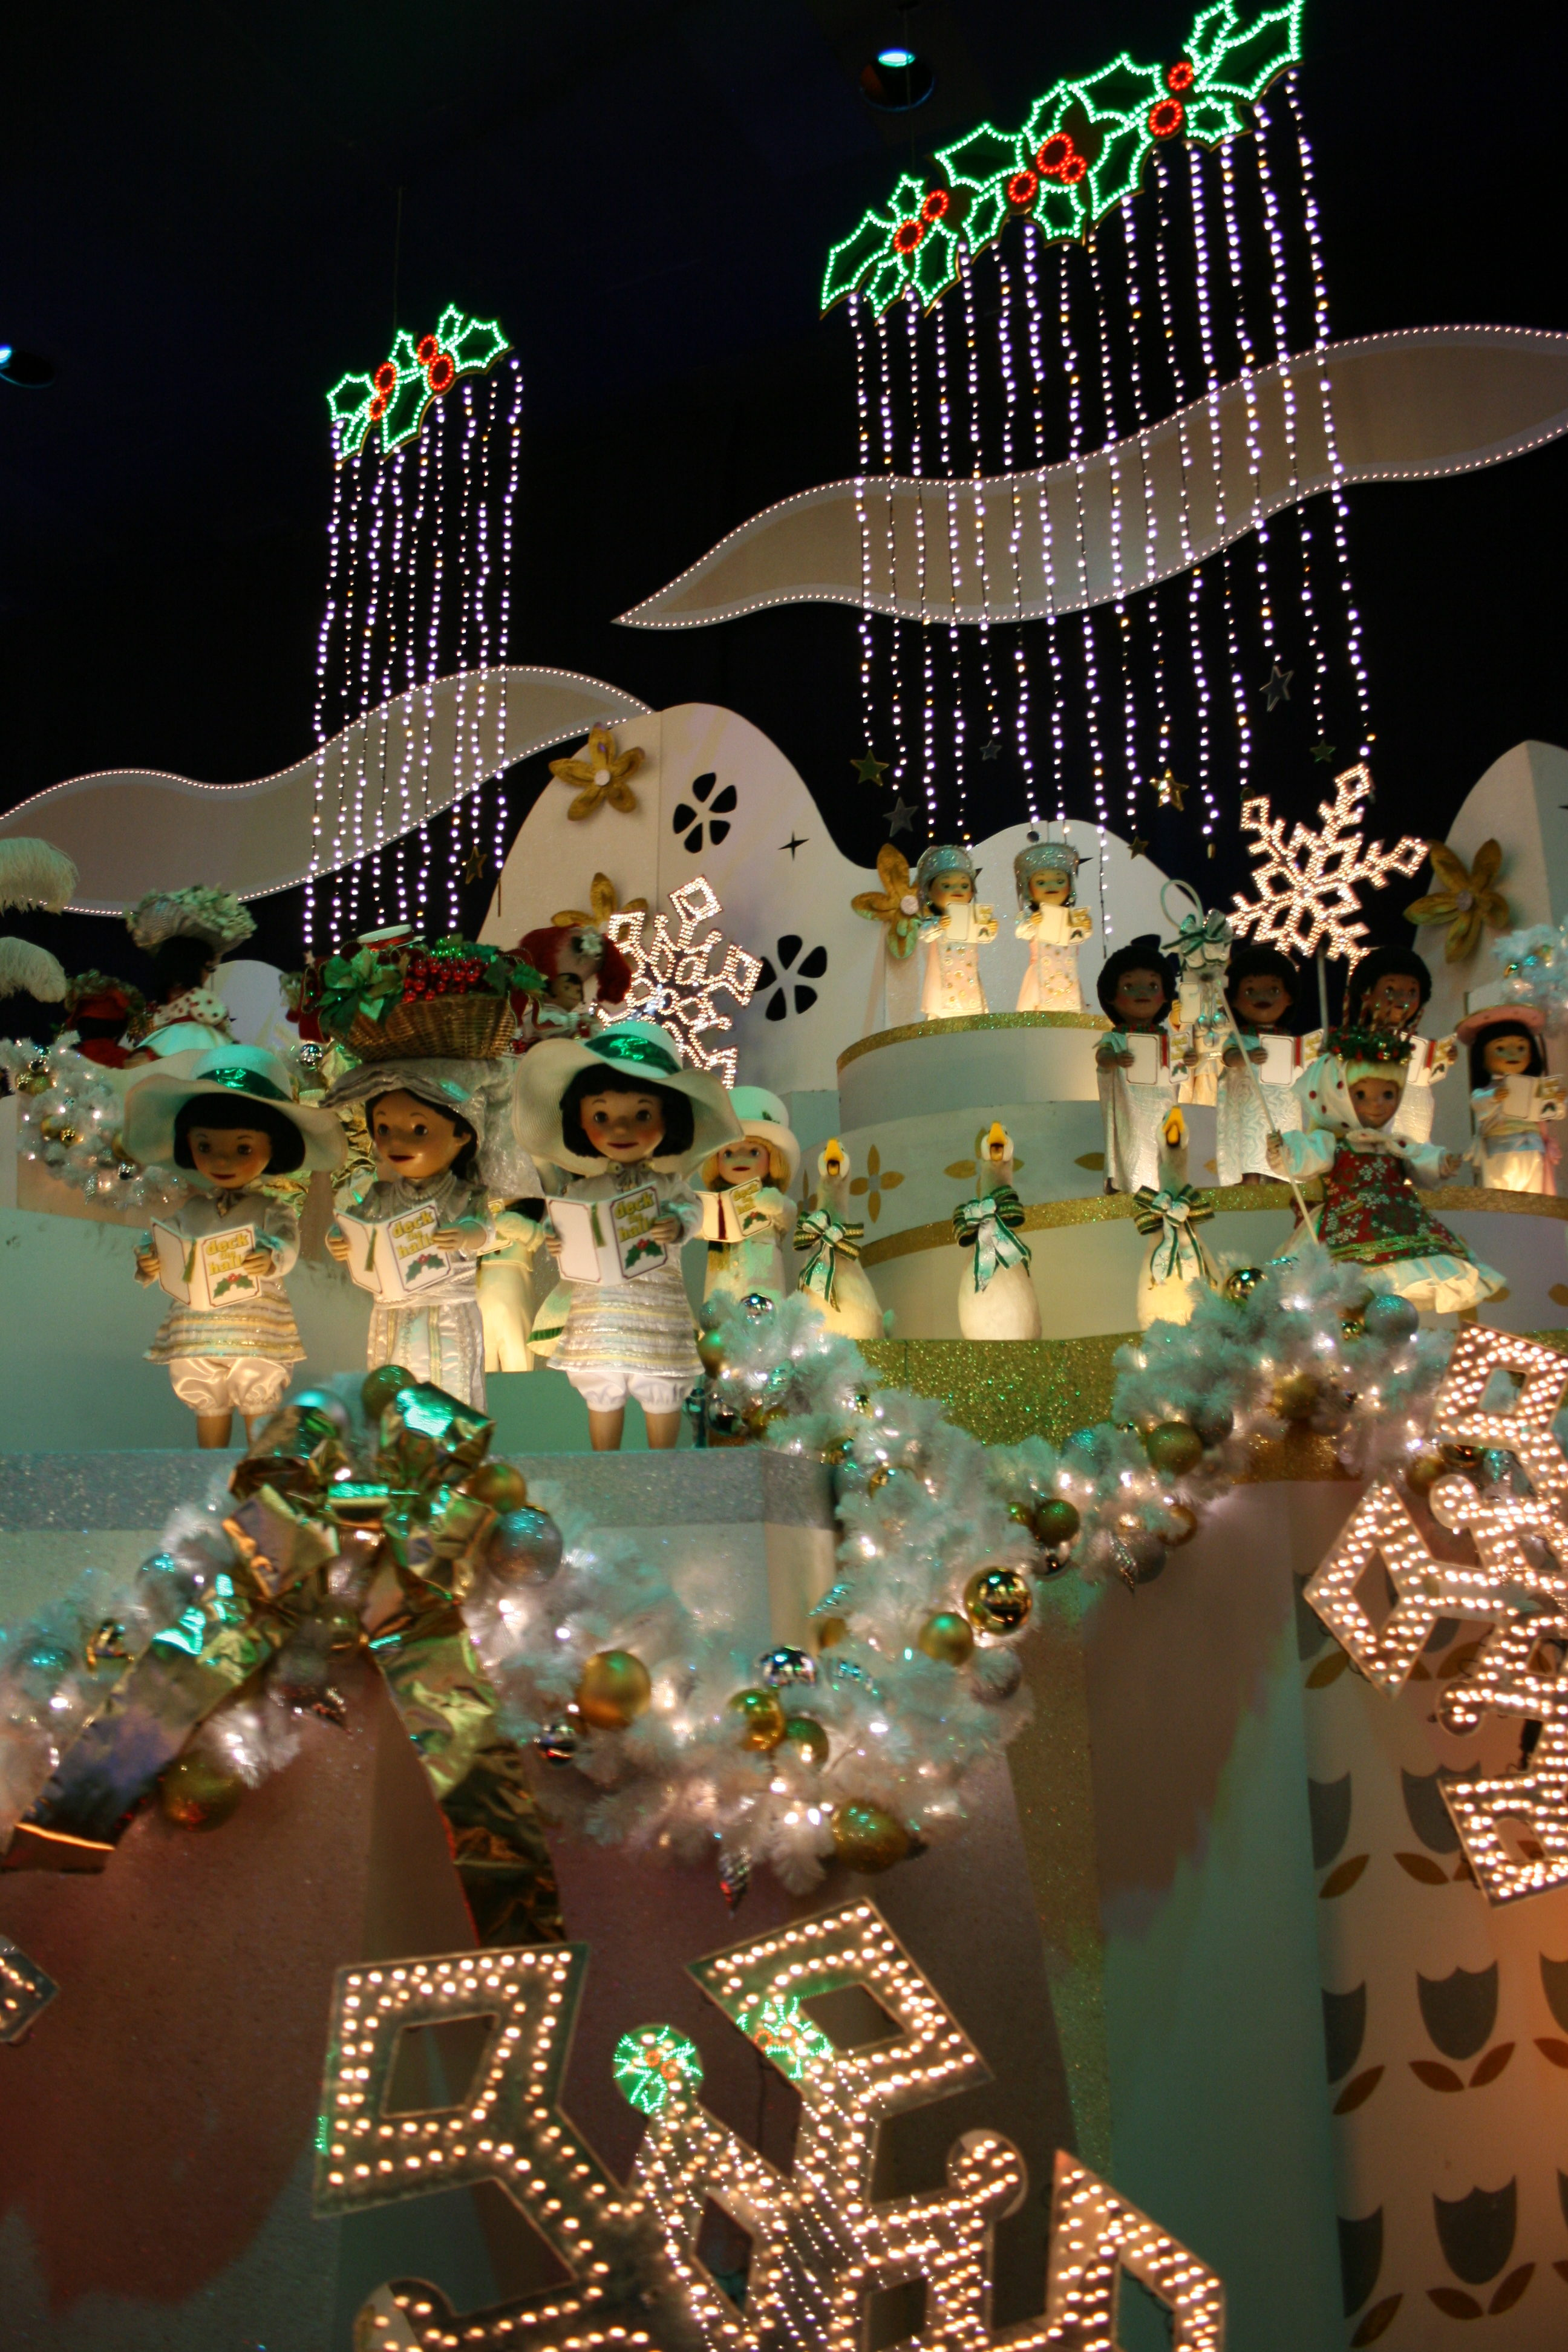 Interior of it's a small world - holiday at Disneyland